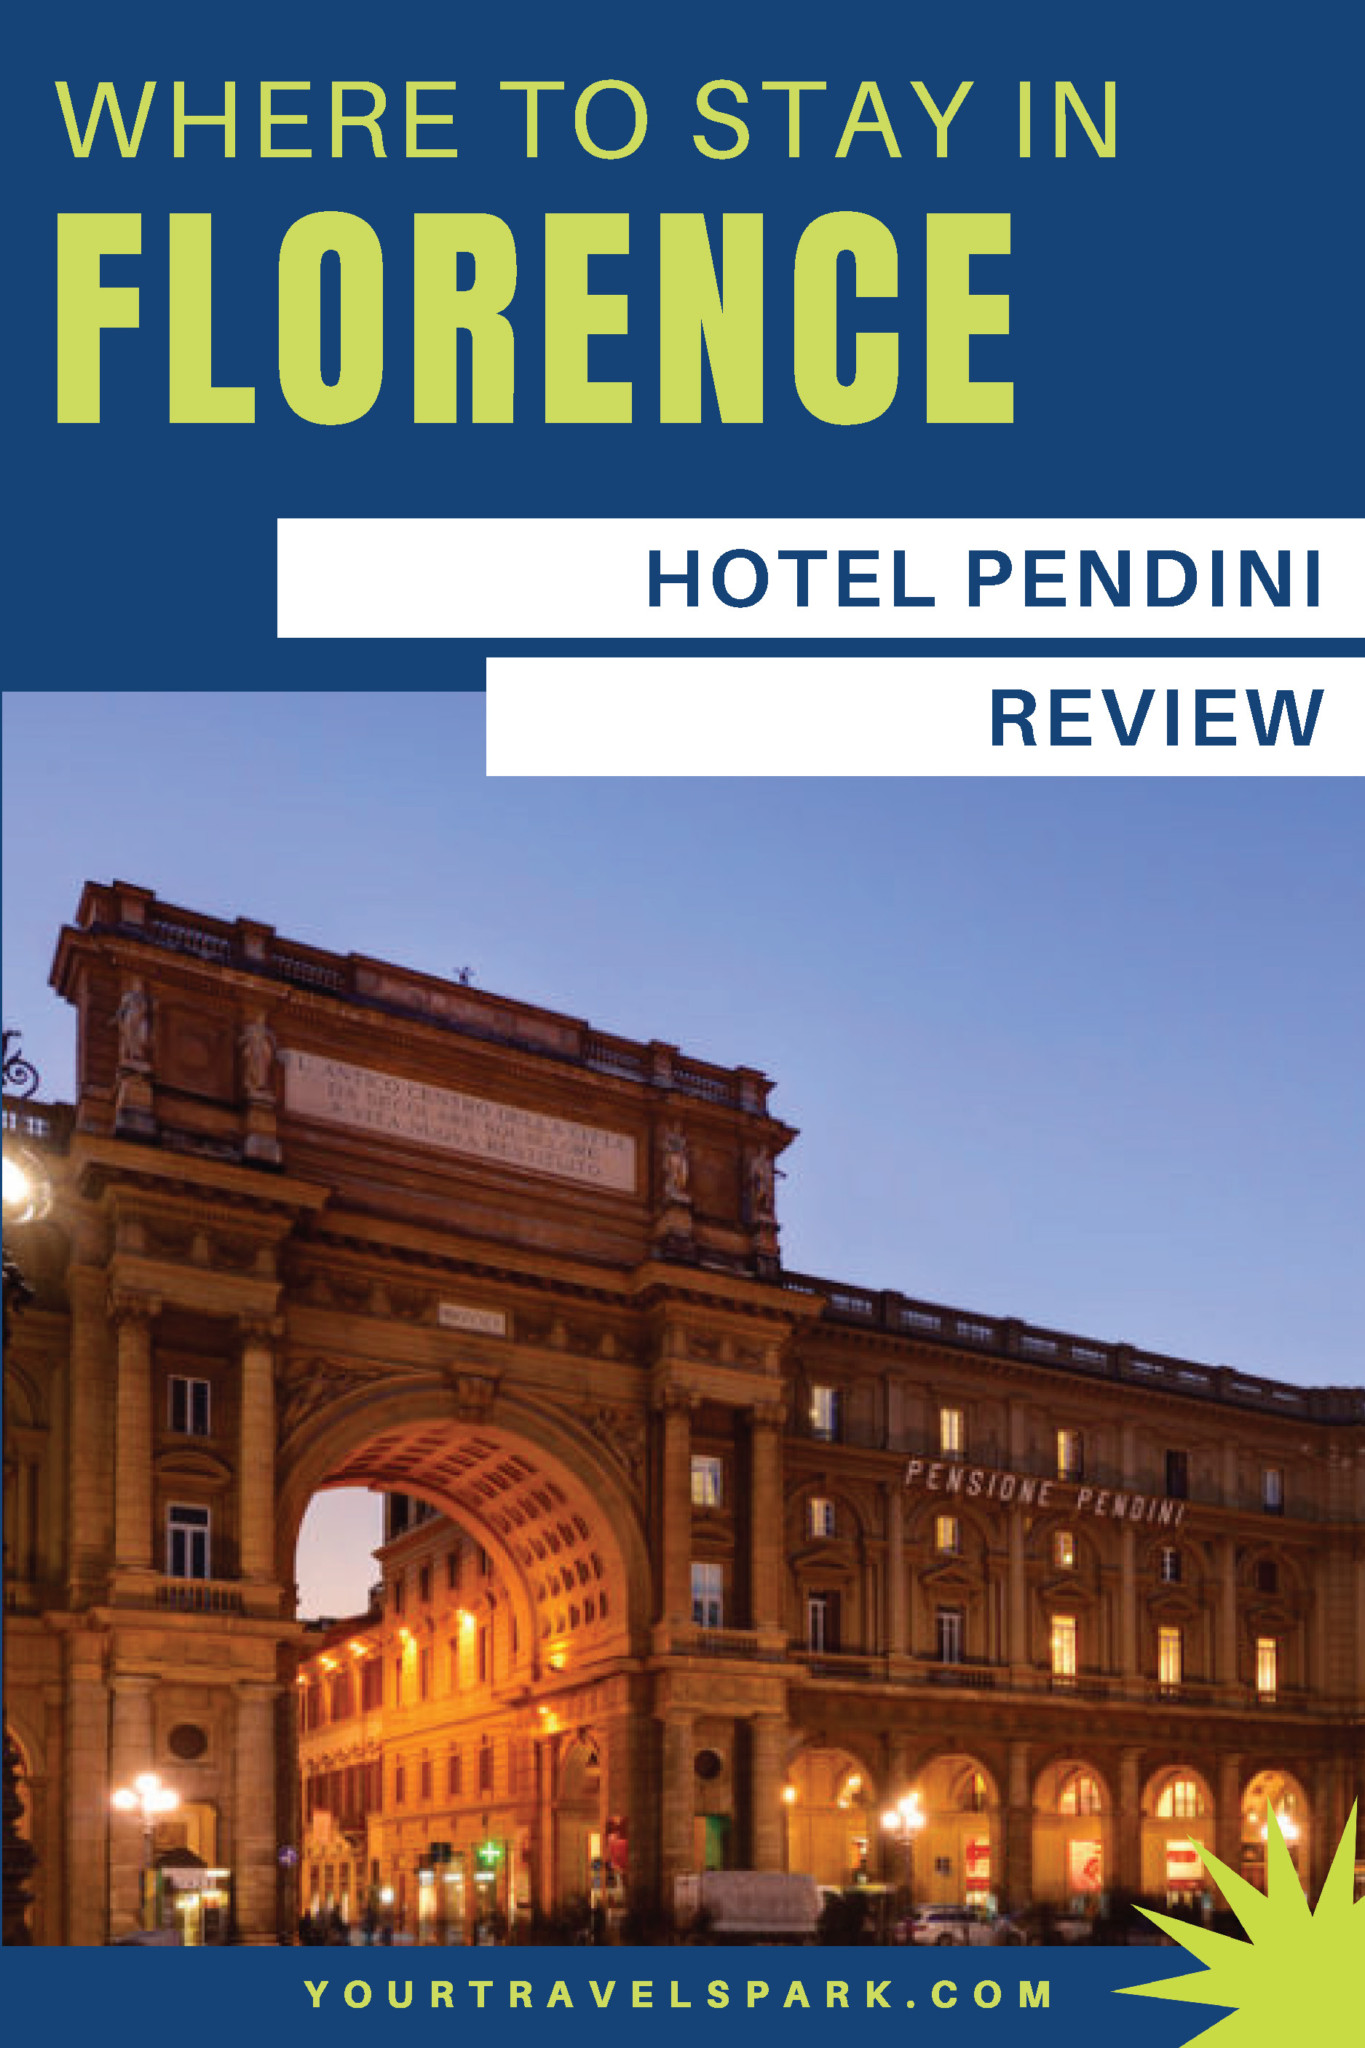 Places to stay in Florence, Italy - Hotel Pendini review. There is plenty to do in Florence, Italy, here are some of our favorite things to do in Florence. #florence #florenceitaly #italia #italy #florenceitalia #hotelpendini #pendini #hotels #florencehotels #florencehotel #placestostayinflorence #firenze #firenzeitaly #firenzeitalia #thingstodoinflorence #tuscany #tuscanyitaly